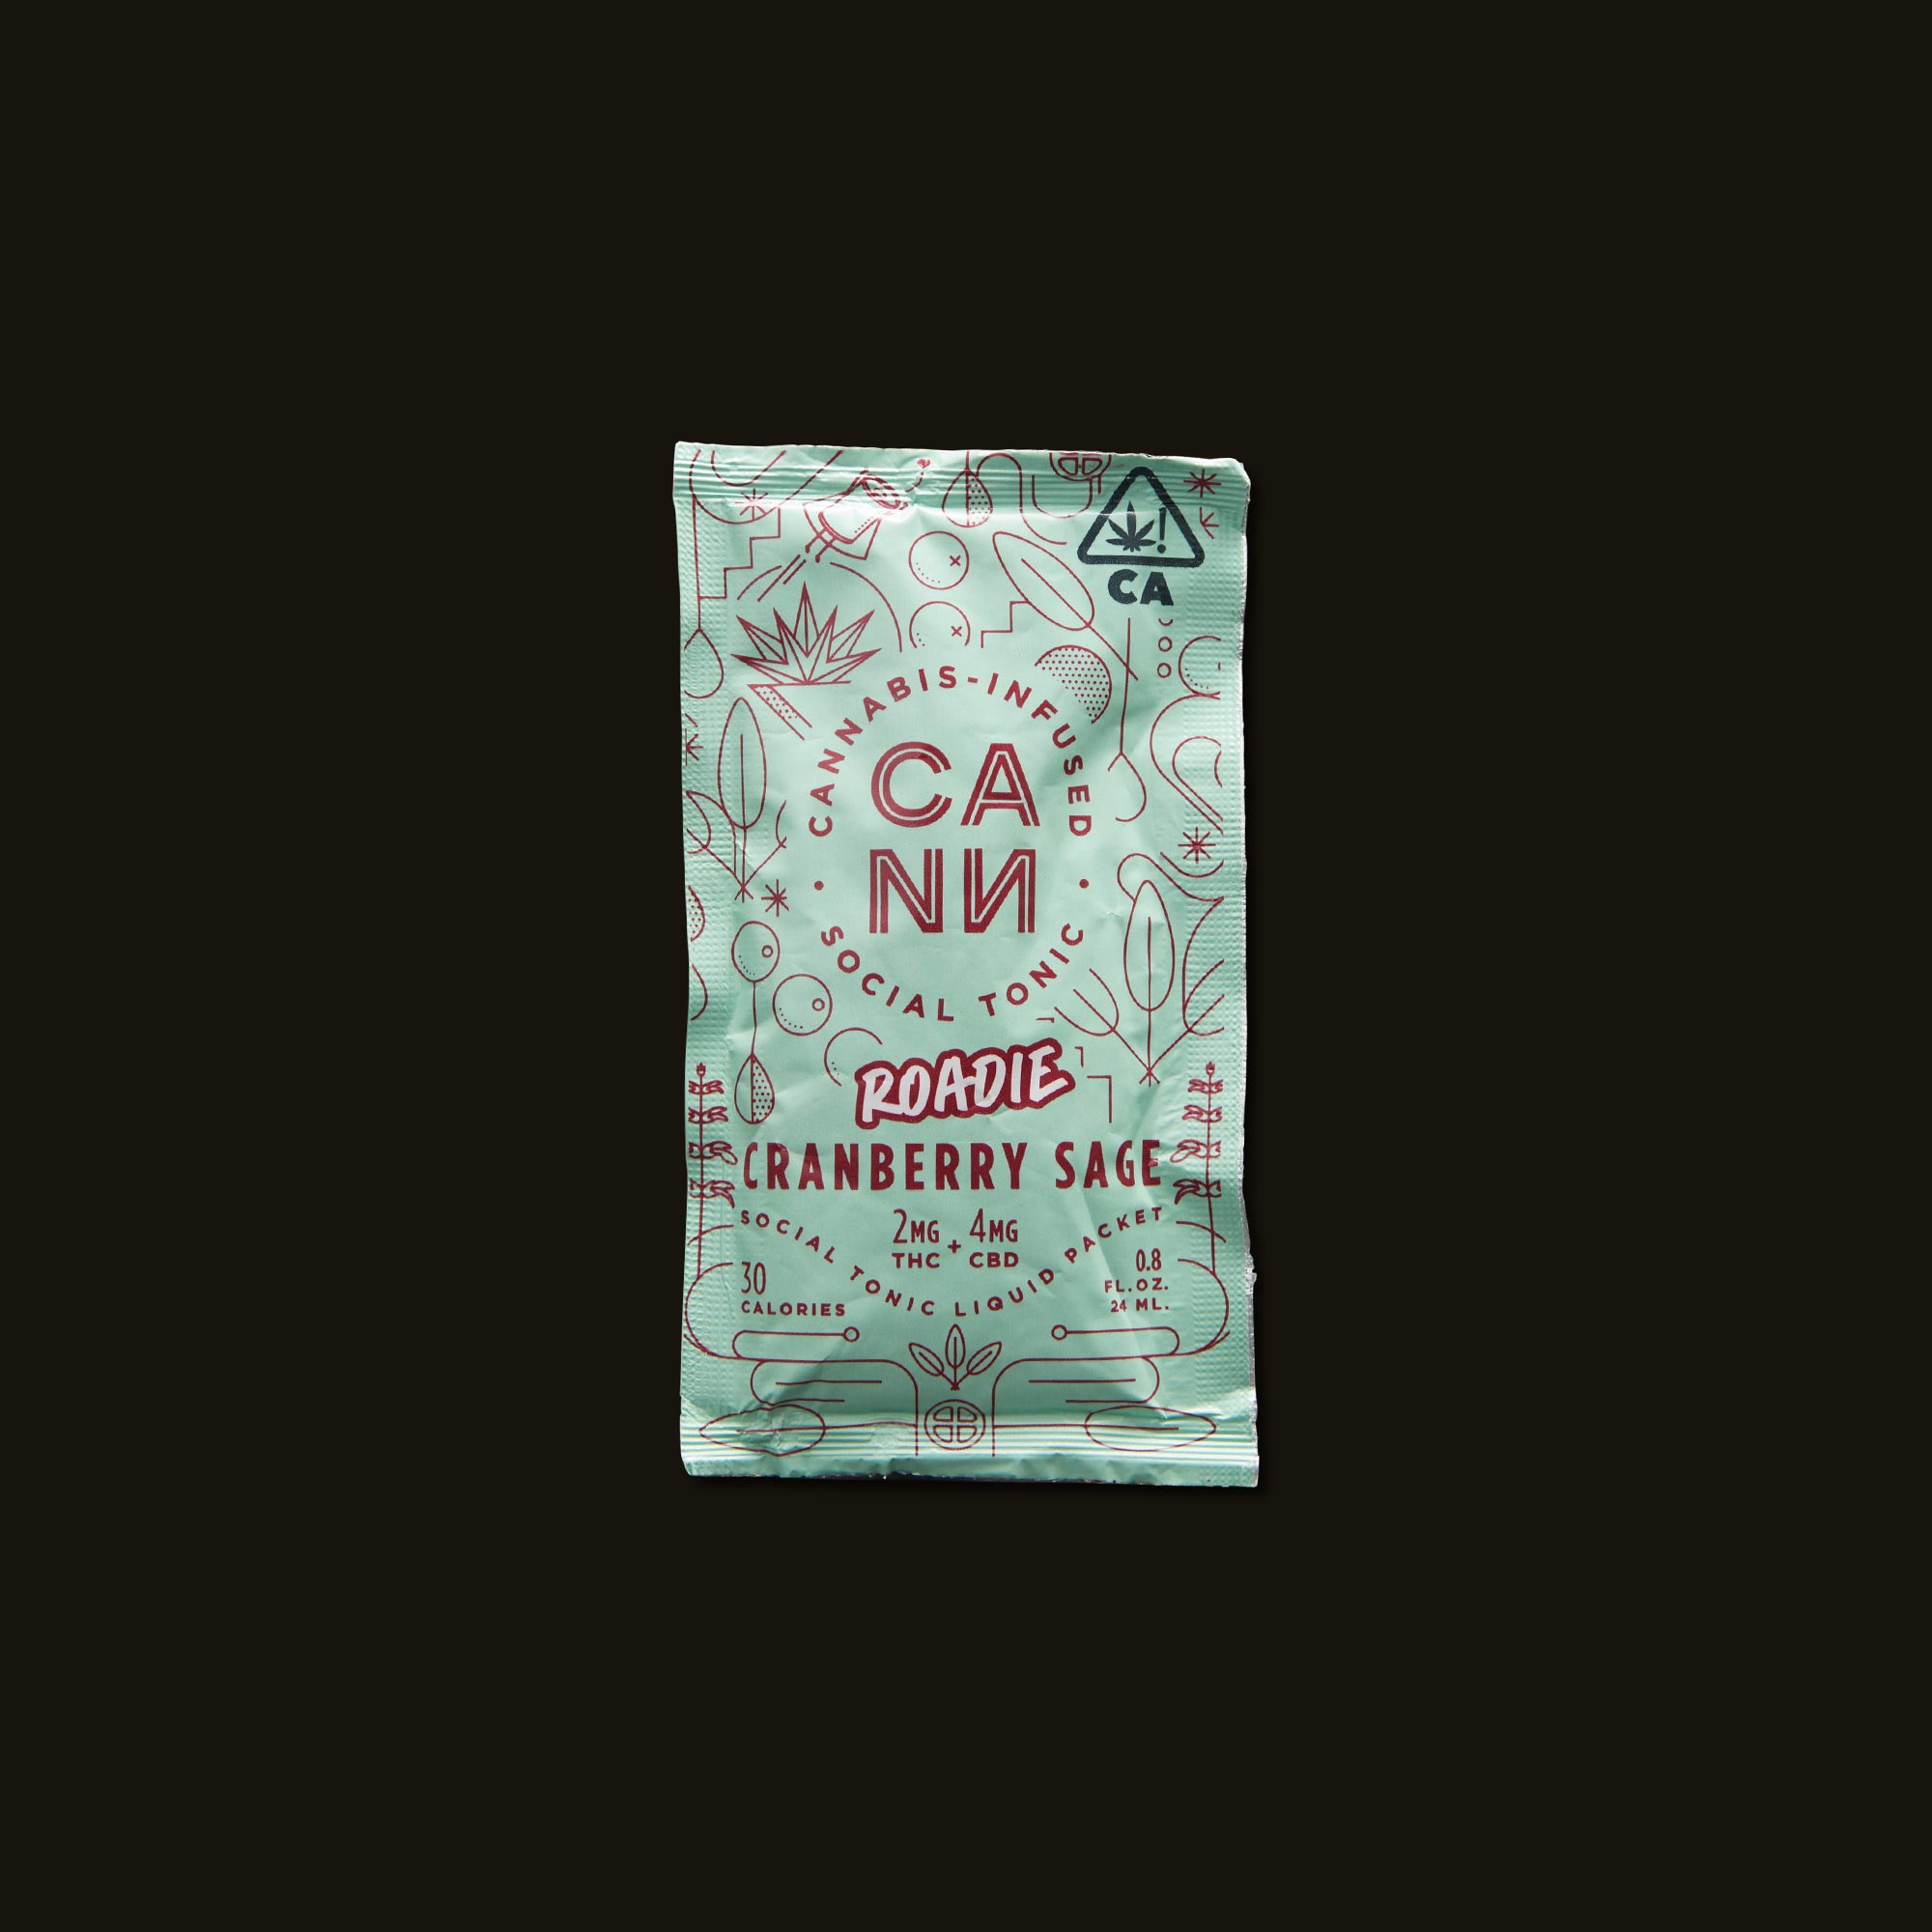 Cann Cranberry Sage Roadies Front Packaging